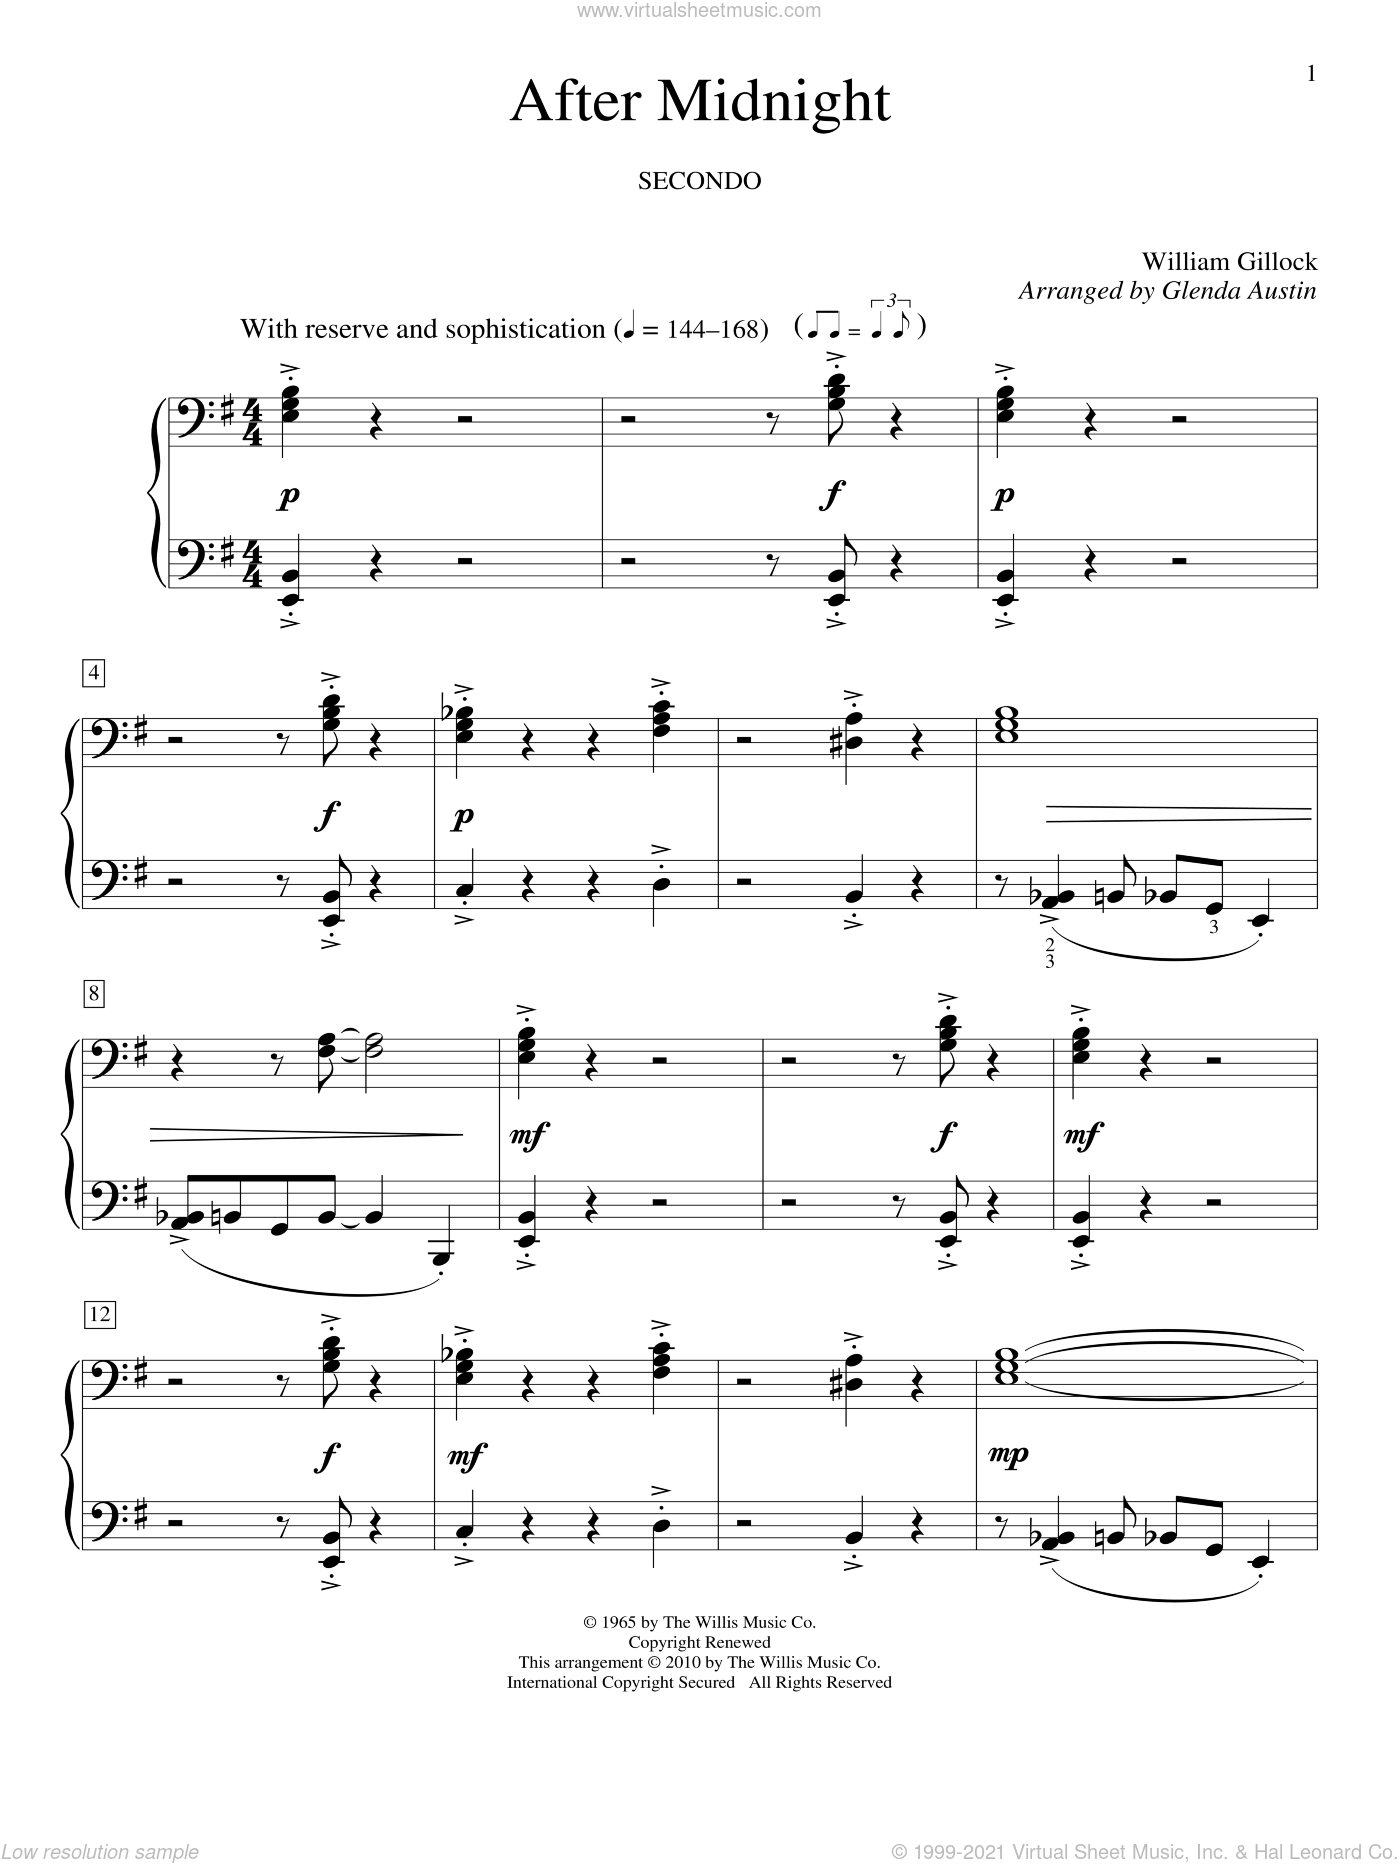 After Midnight sheet music for piano four hands by William Gillock and Glenda Austin, intermediate skill level